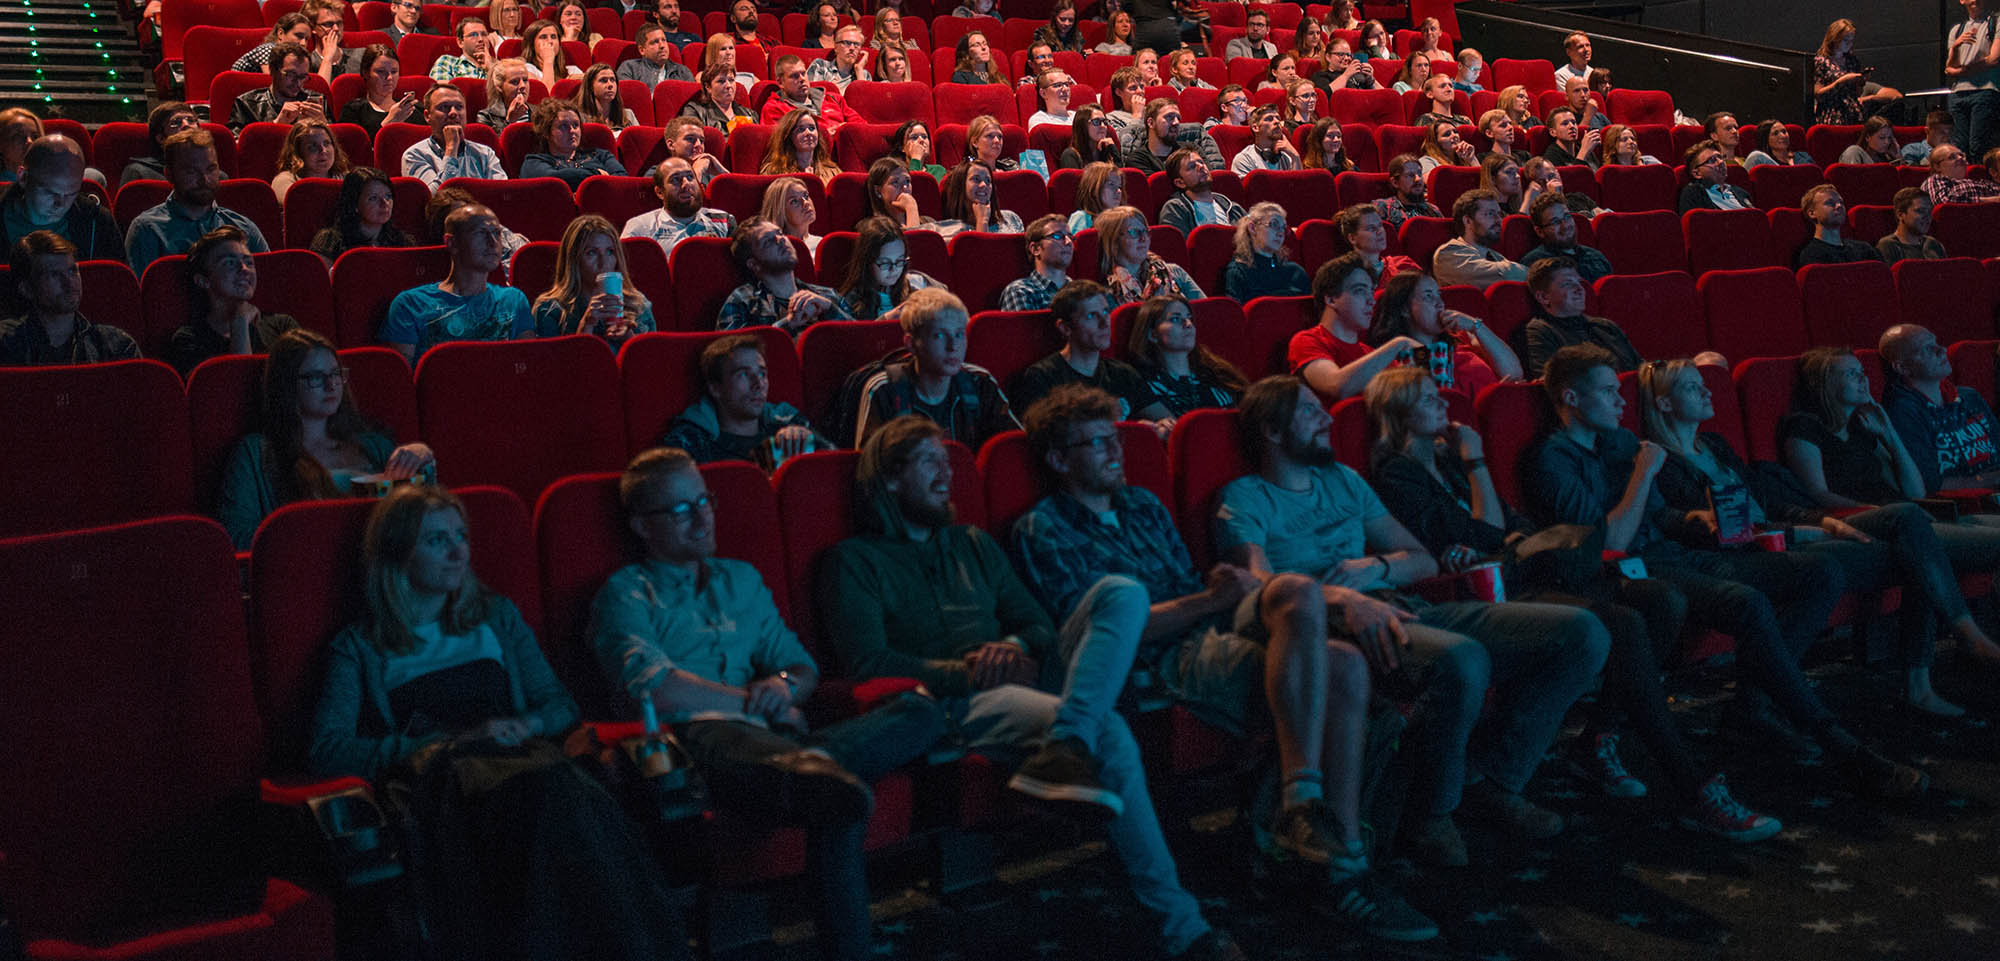 Full of diversity, personality, and social awareness, Australian indie film festivals offer a compelling mix of movies with a vast array of opportunities for filmmakers of all genres and interests. Here are ten of the most interesting and exceptional Aussie independent film festivals you need to know about.